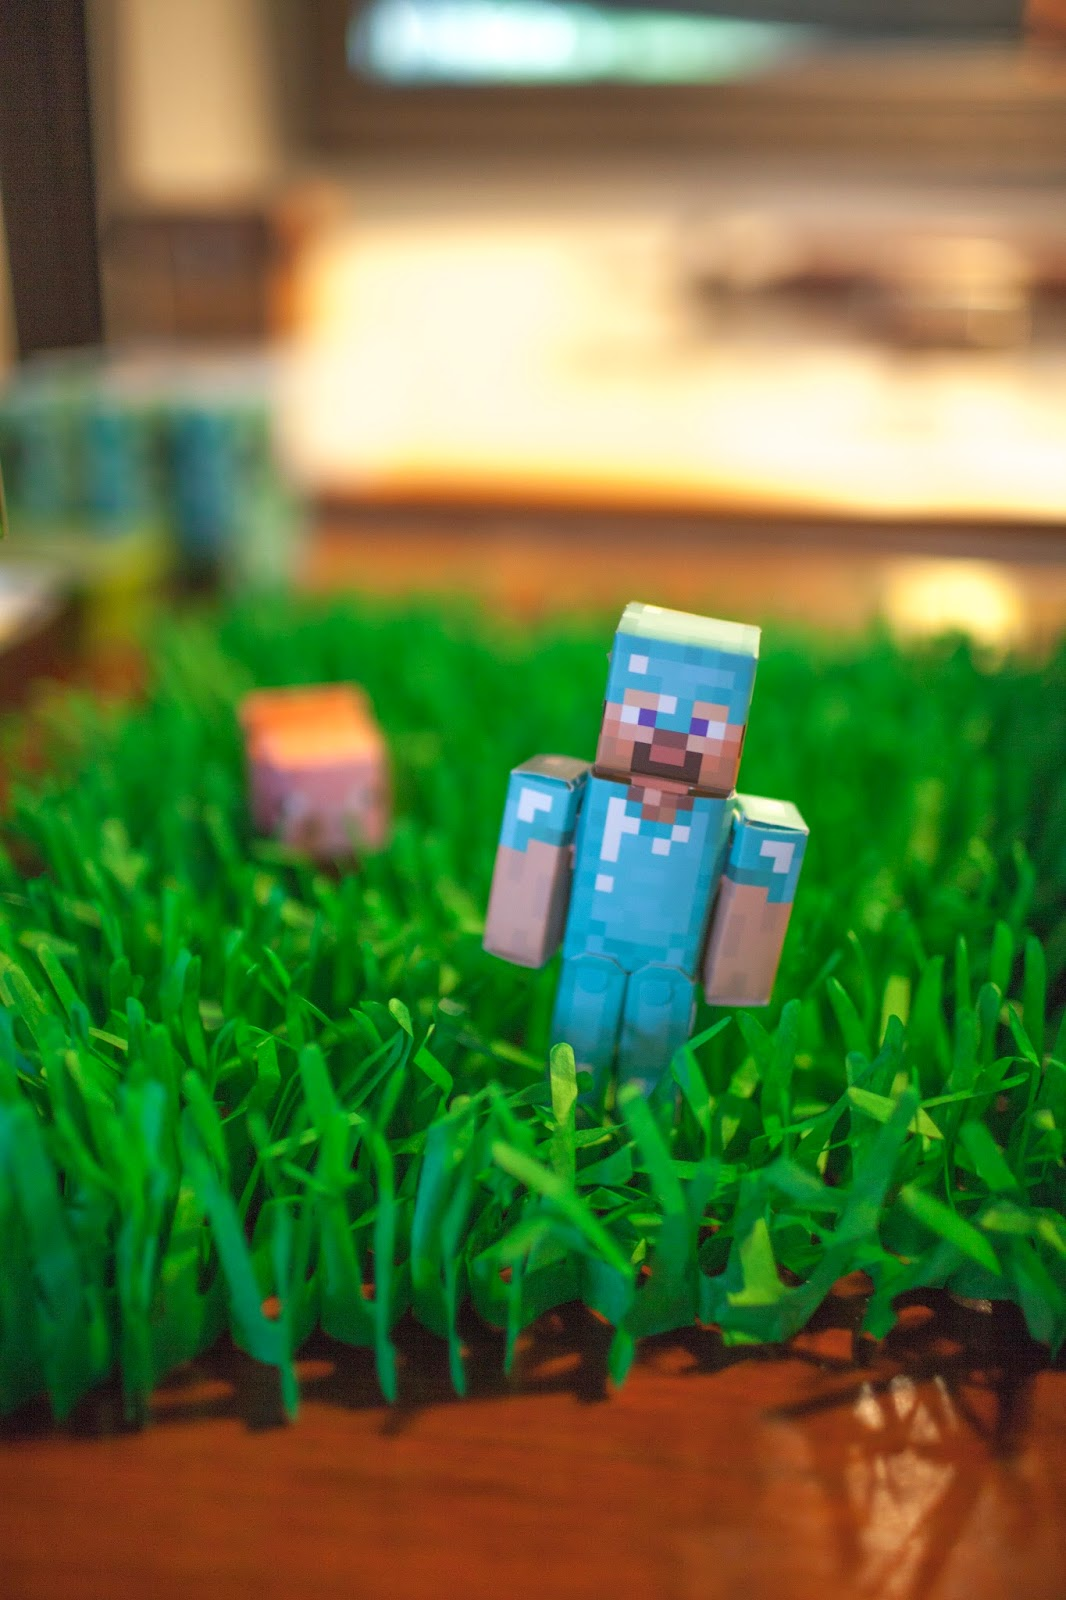 Papercraft table decorations for a Minecraft party